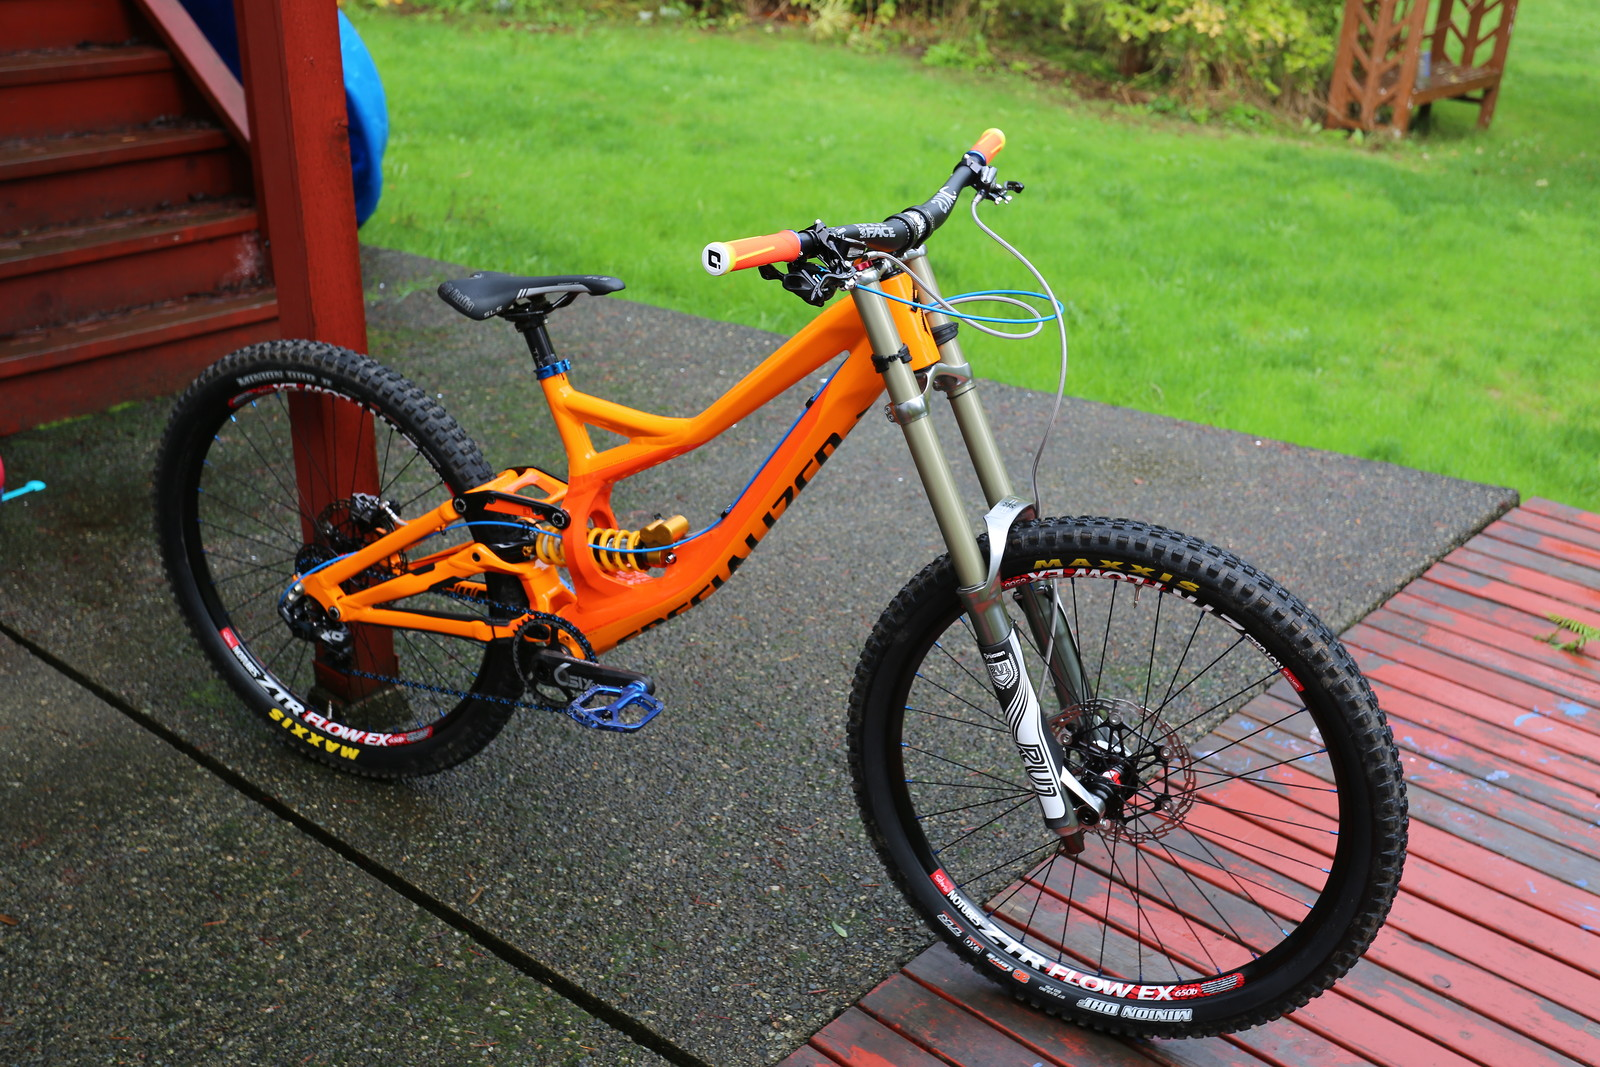 2015 Demo 8 650B front end